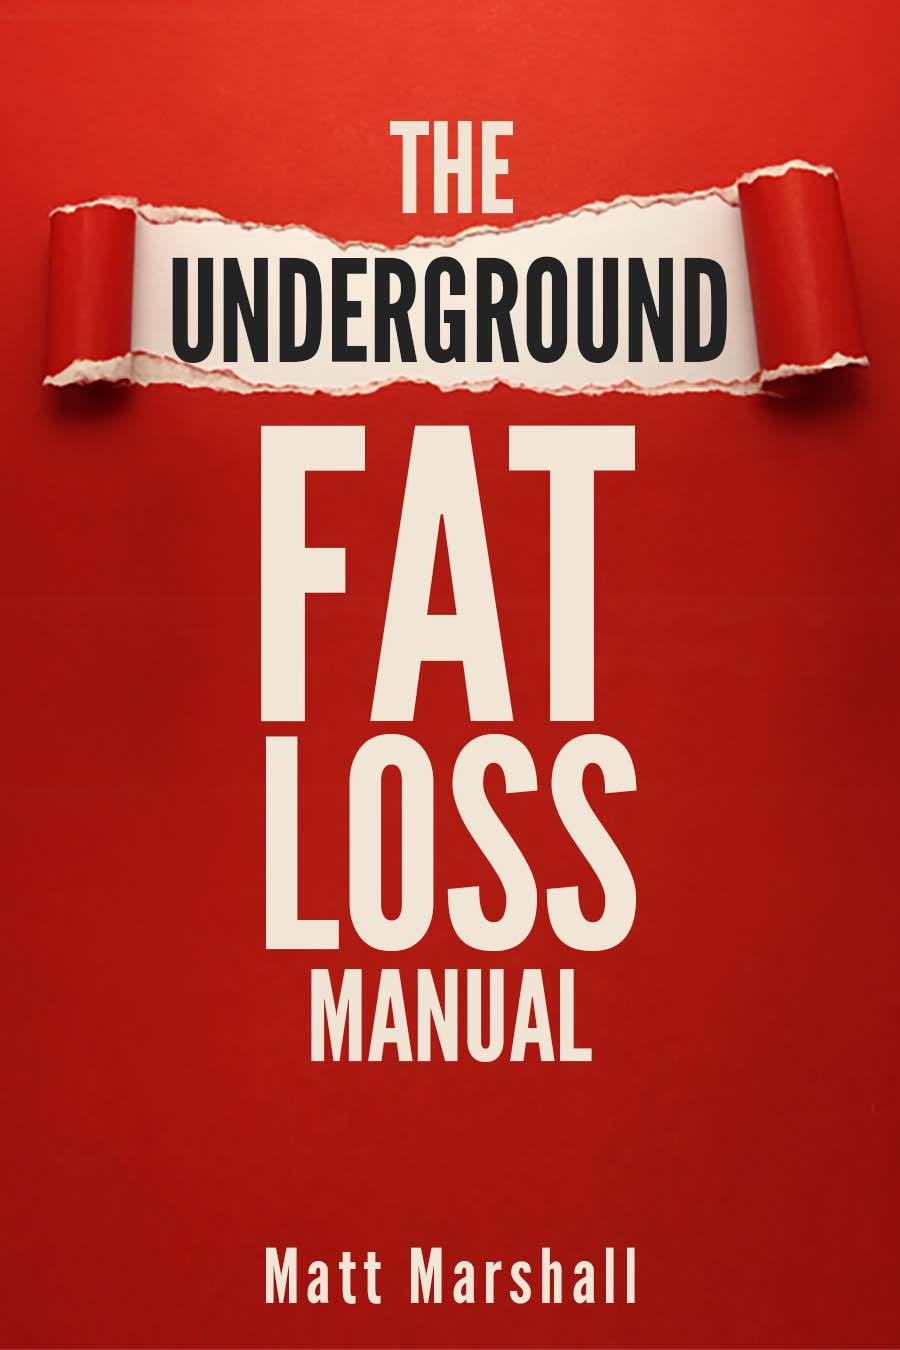 The Underground Fat Loss Manual Full Review, Save Water Team